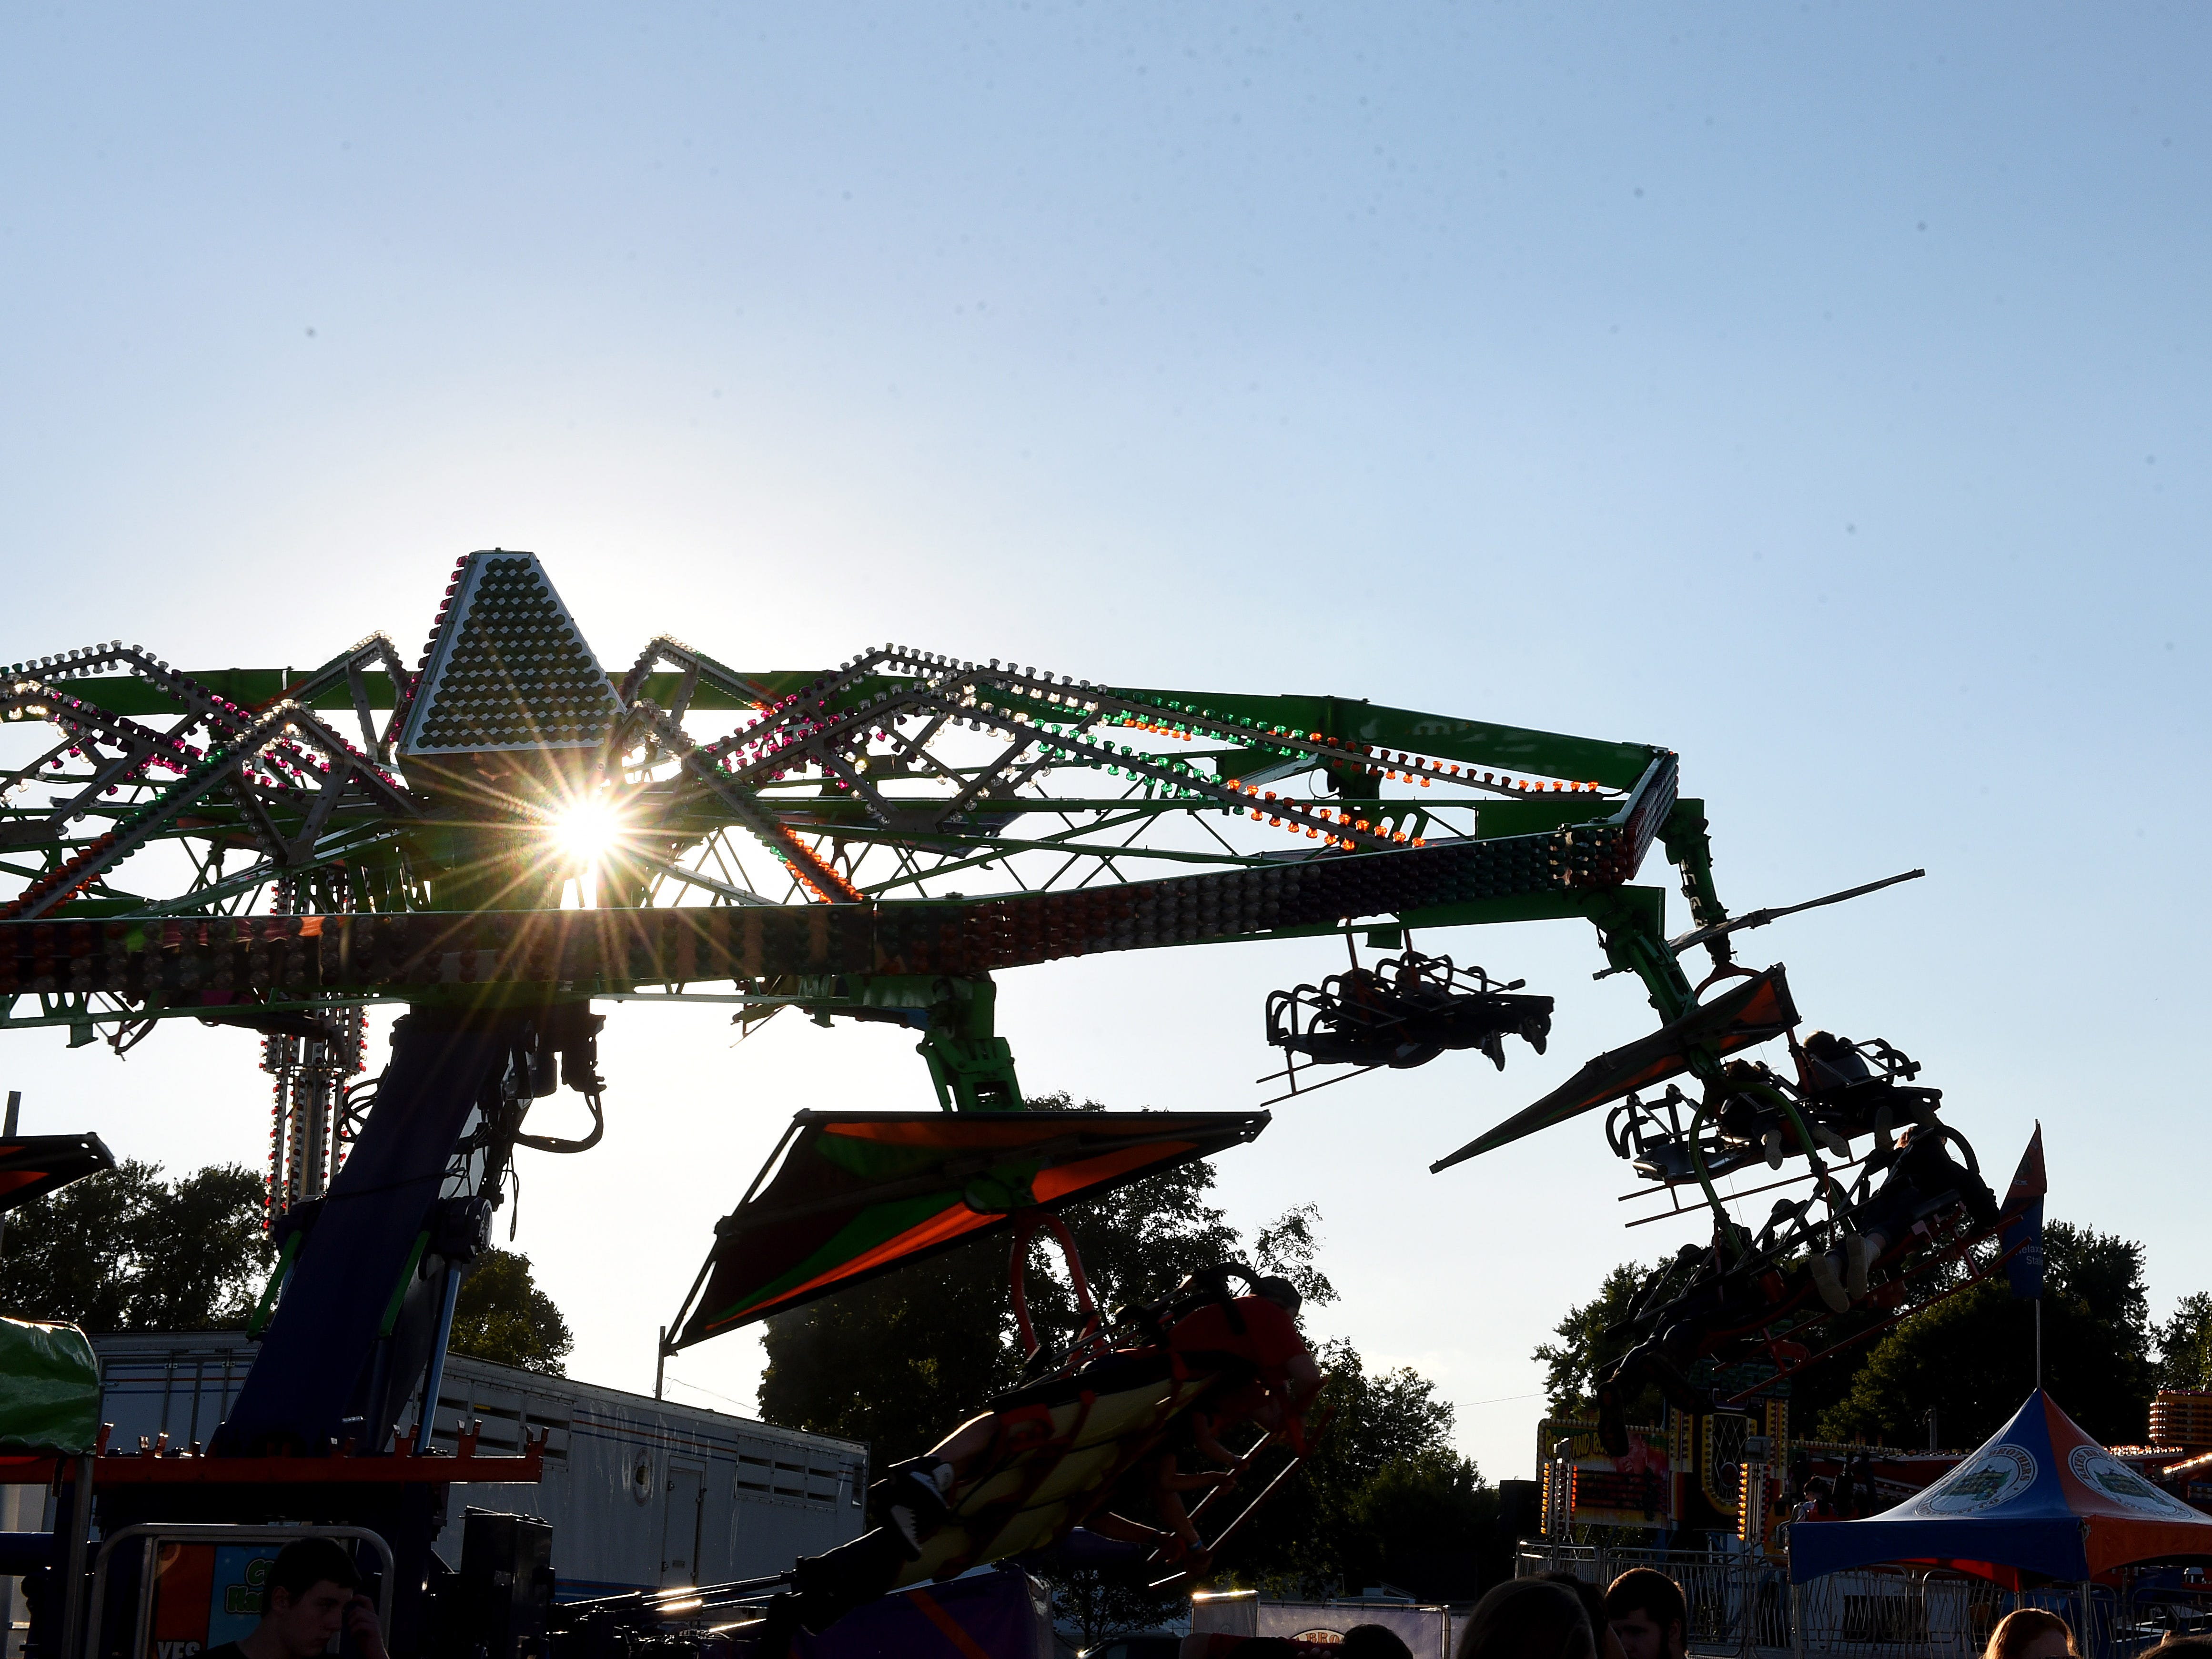 Friday at the Coshocton County Fair